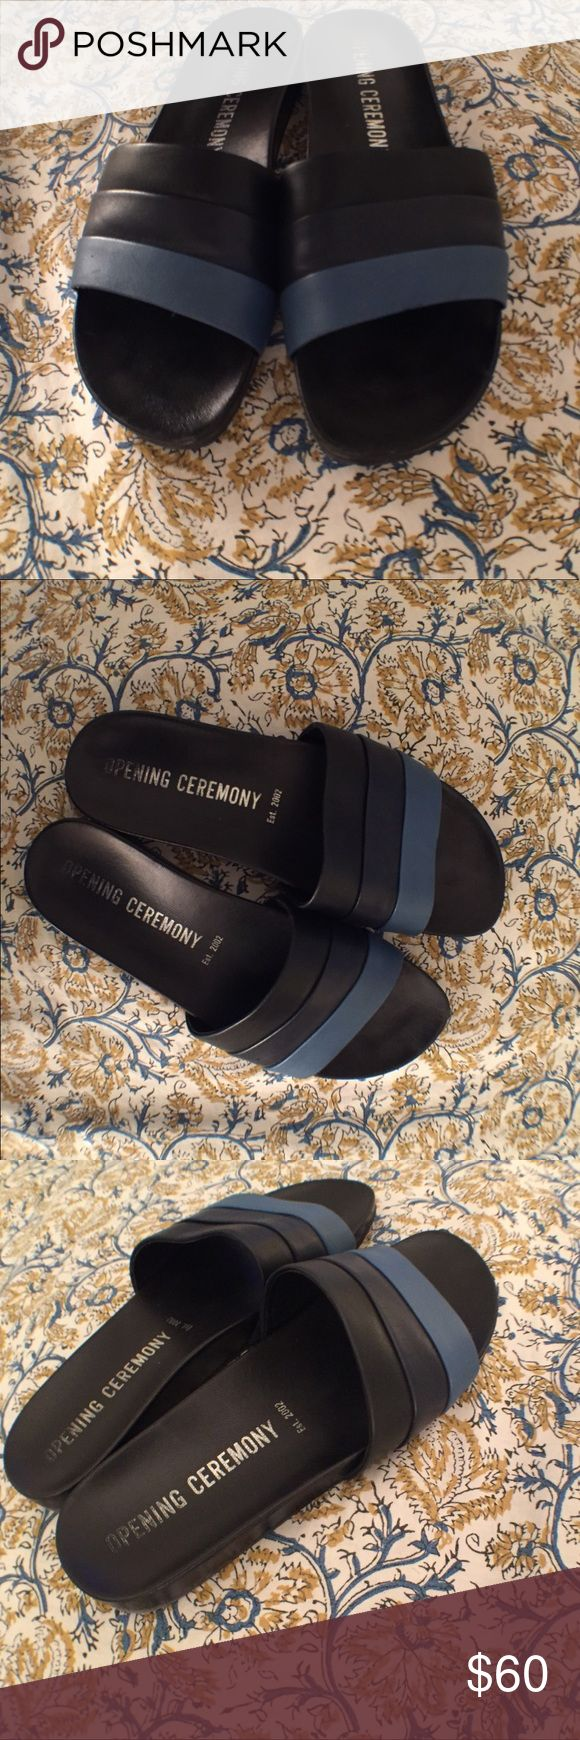 Opening Ceremony Kaatya Leather Slides Gorgeous leather slides with a three-tone band, contoured footbed, and a rubber sole. They run small so sadly do not fit me (I am a 7.5 and these are 37s and since they run small would fit a 6.5 US best). Opening Ceremony Shoes Sandals